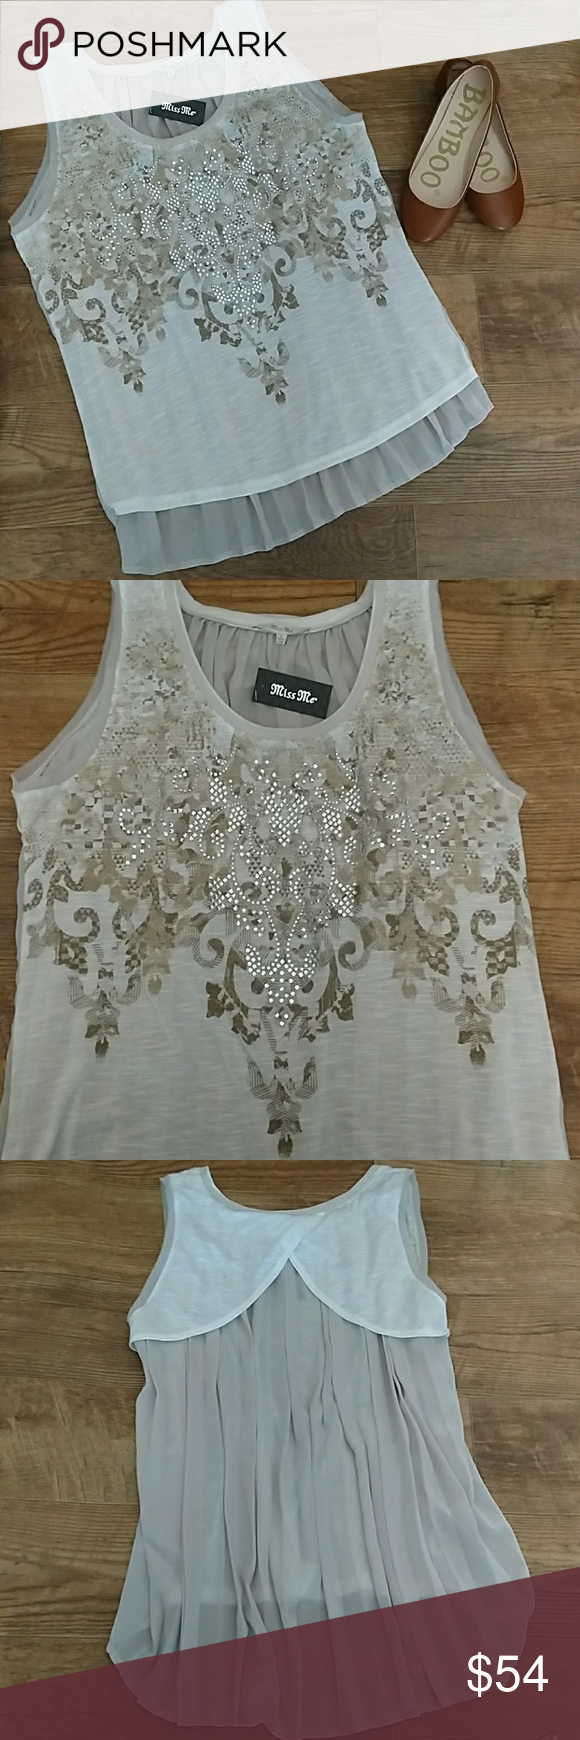 NEW MISS ME HIGH LOW GRAPHIC TEE New Miss Me High low tank w a tan and gold graphic design w clear crystals and the back is a pleated sheer material. The front is a ivory jersey material and the back is a cream sheer material, and is 100% polyester. Miss Me Tops Tank Tops